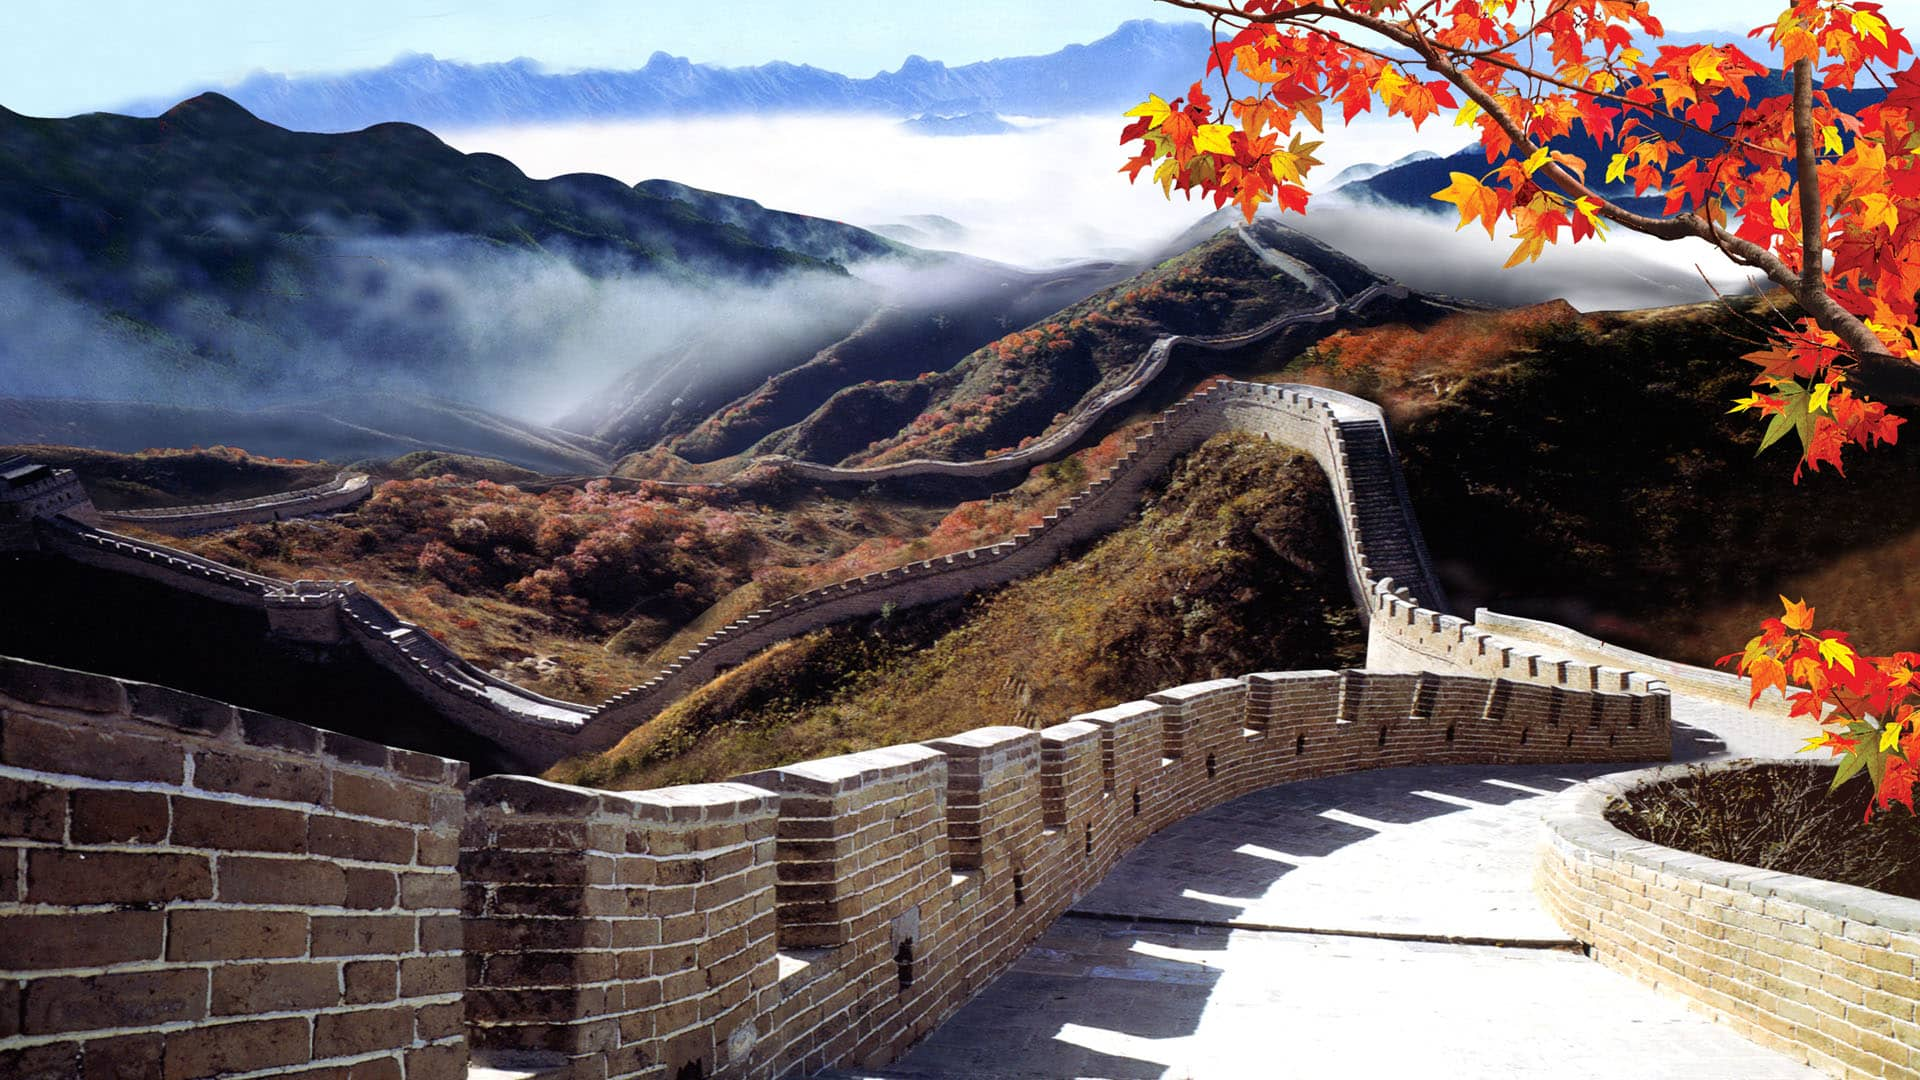 great-wall-of-china-wallpaper-36530-37363-hd-wallpapers-min